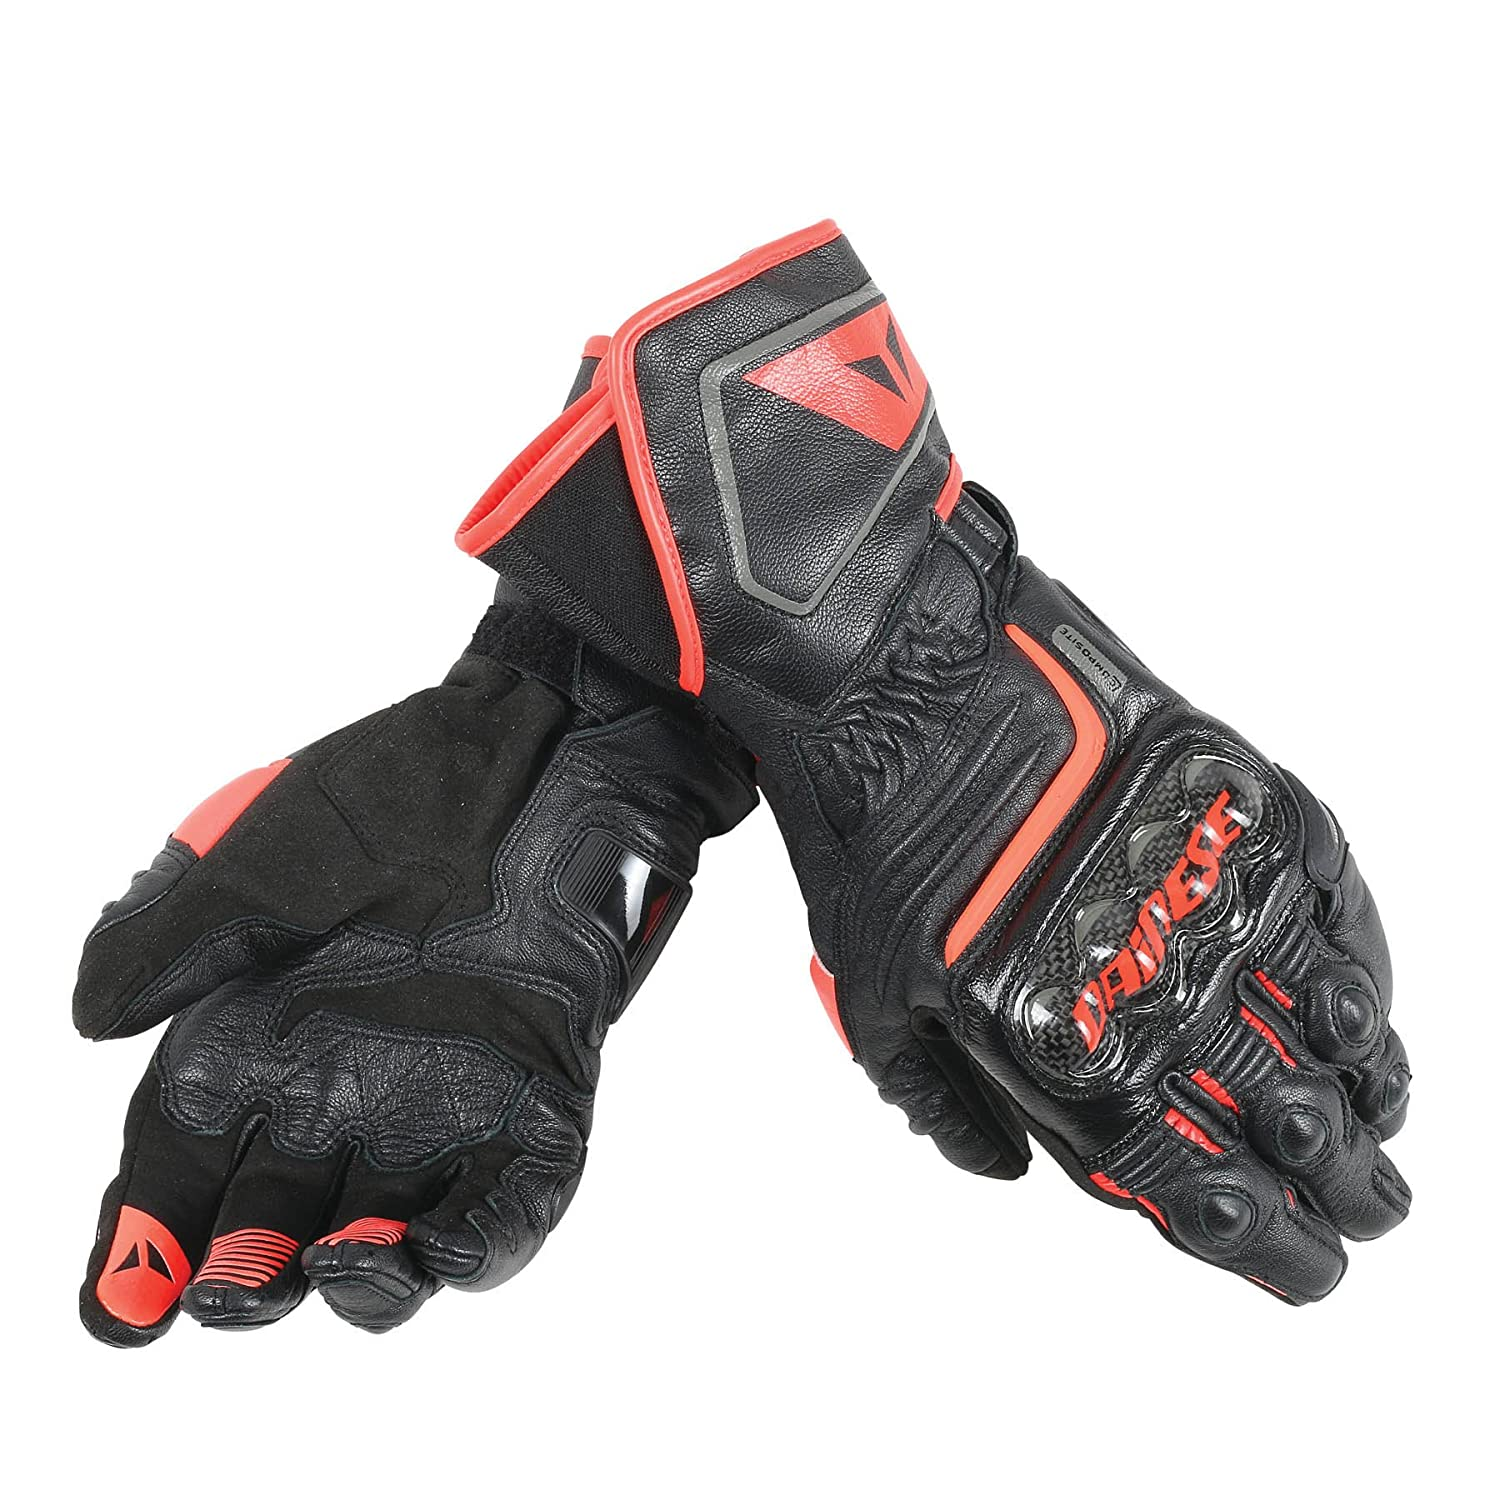 Dainese Carbon D1 Long Mens Leather Motorcycle Gloves Black/Fluo Red LG